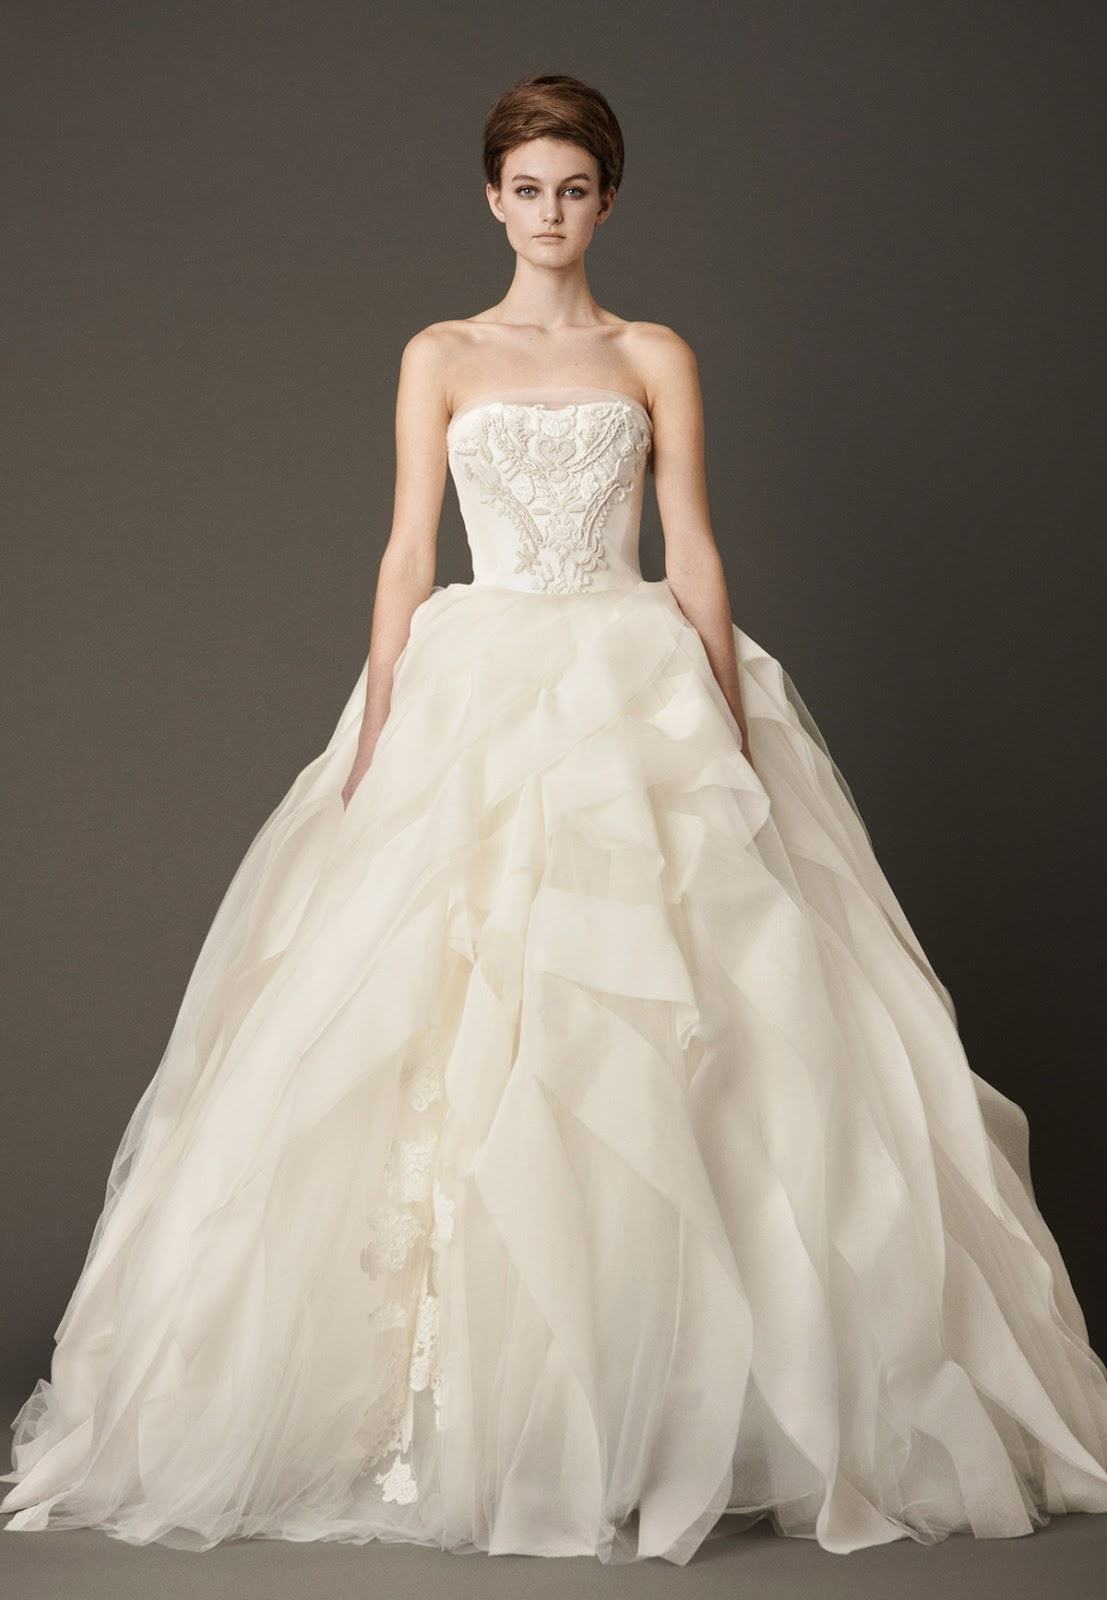 DressyBridal: Vera Wang Fall 2013 Ruffled Wedding Gowns